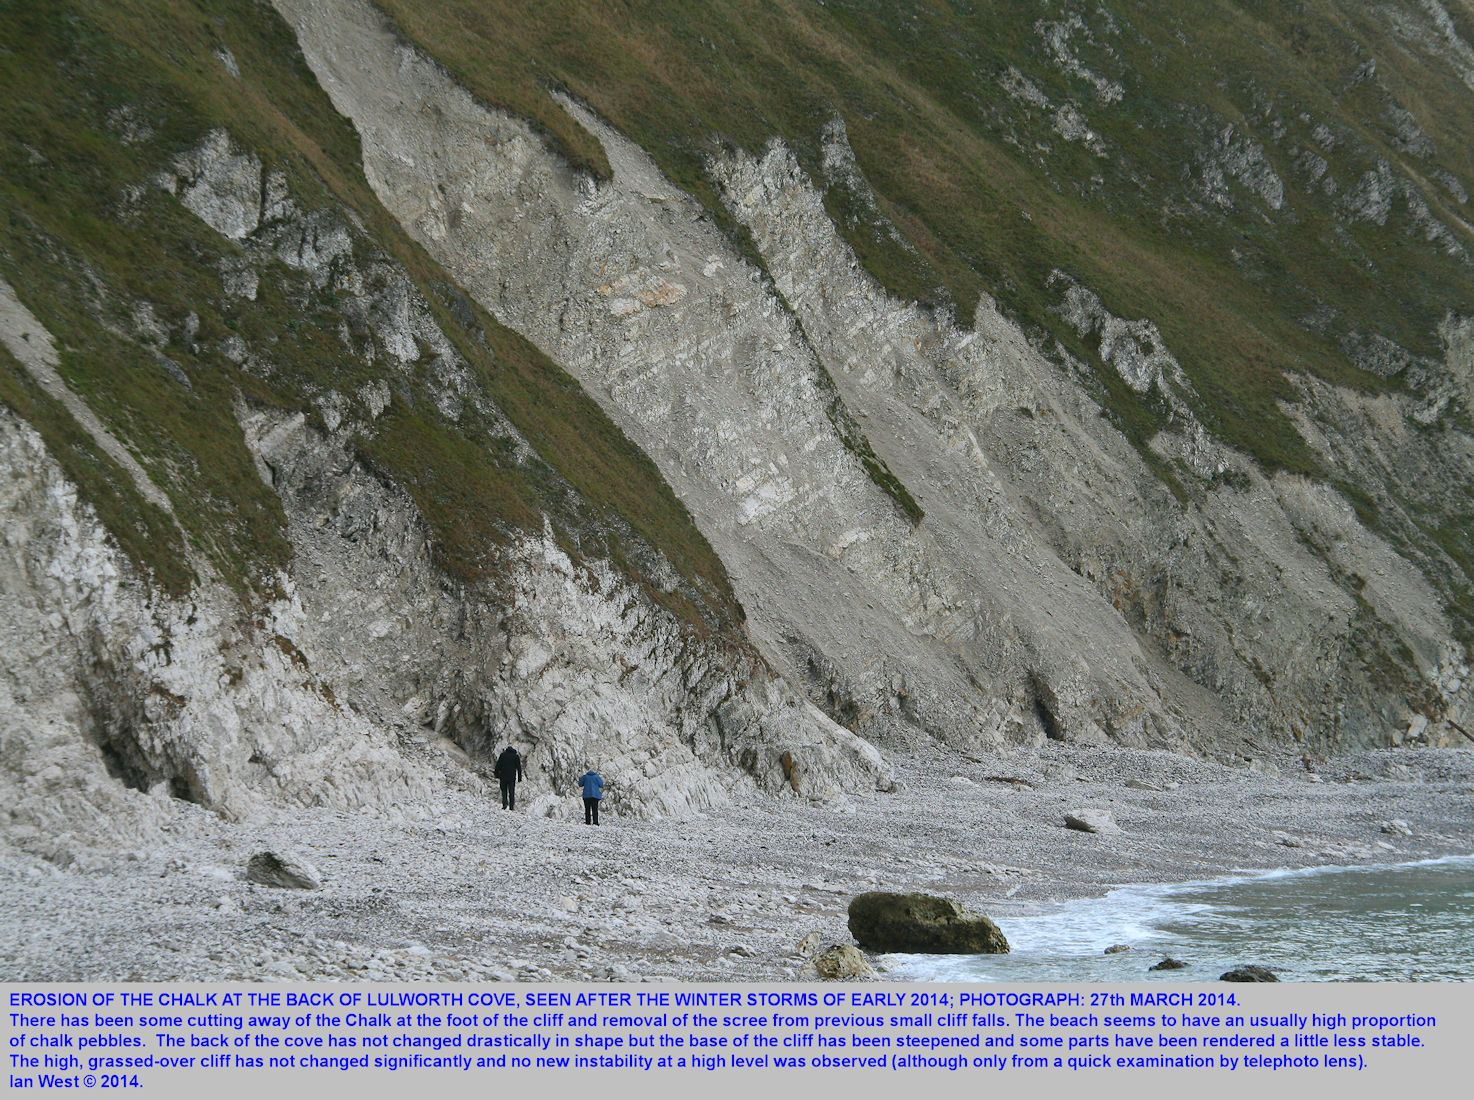 Part of the back Chalk cliff of Lulworth Cove, Dorset, see on the 27th March 2014, after severe winter storms in January and February 2014